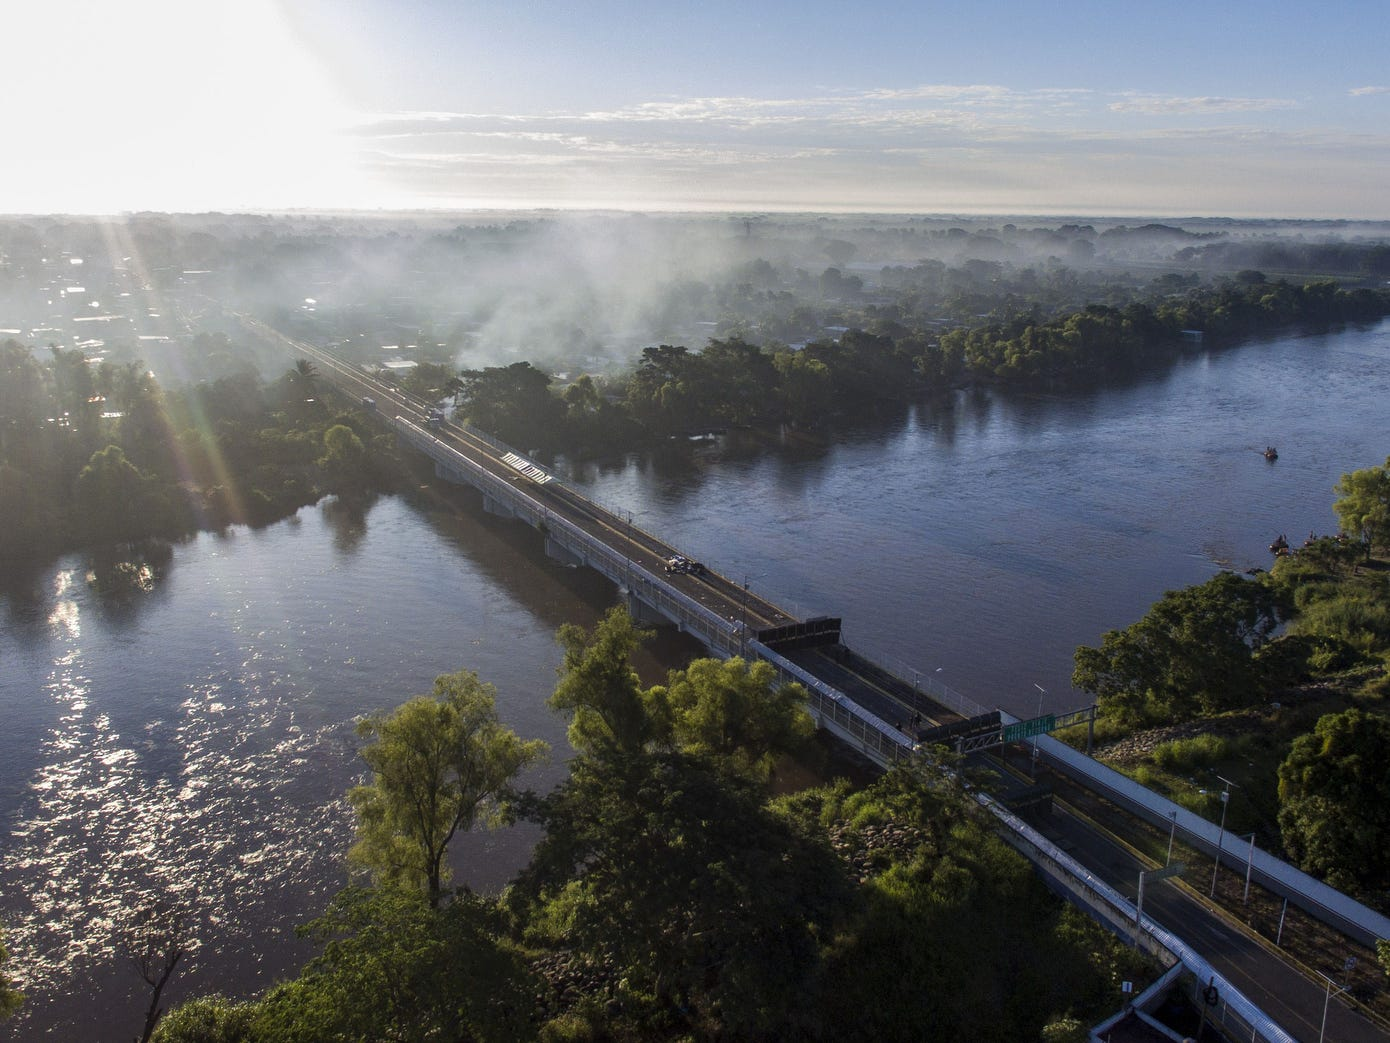 Aerial view of the Guatemala-Mexico international bridge in Ciudad Hidalgo, Chiapas state, Mexico, on Tuesday.  The bridge remains empty a day after a caravan of Honduran migrants heading to the U.S. crossed it. The United Nations said more than 7,000 people were now heading toward the U.S., as more migrants joined the original group, including some Central Americans who were already in Mexico.